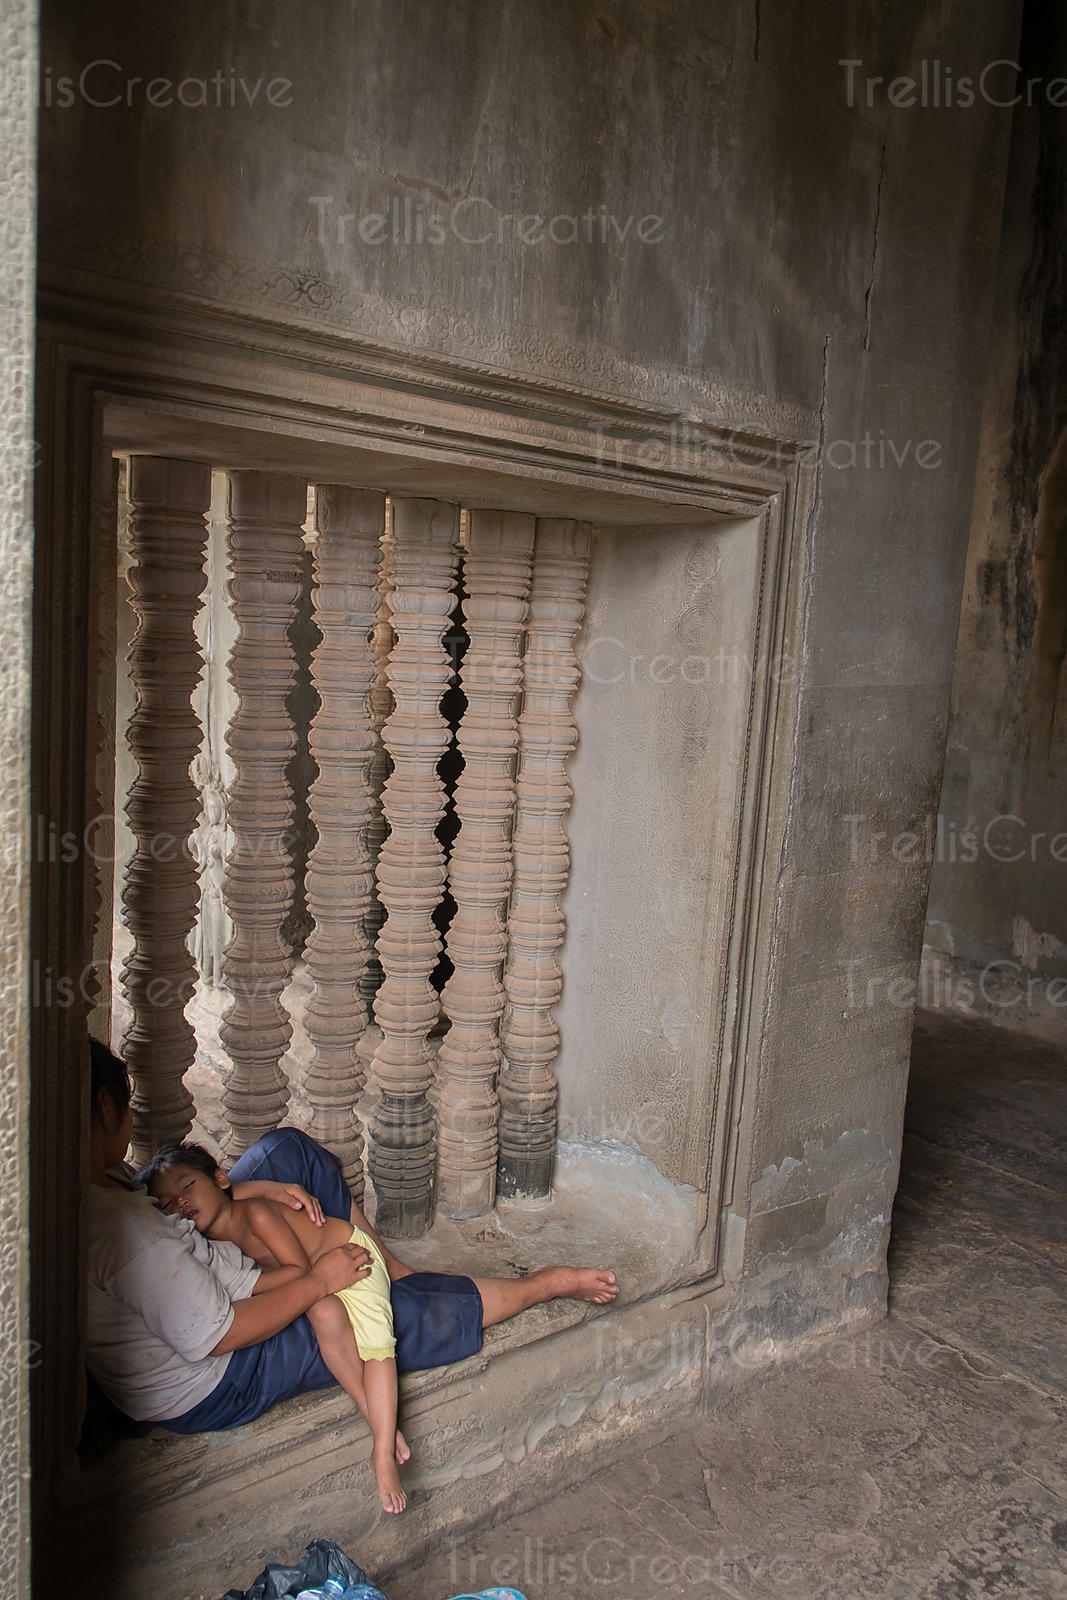 A woman sleeping with her son on window sill inside the temple at Angkor Wat